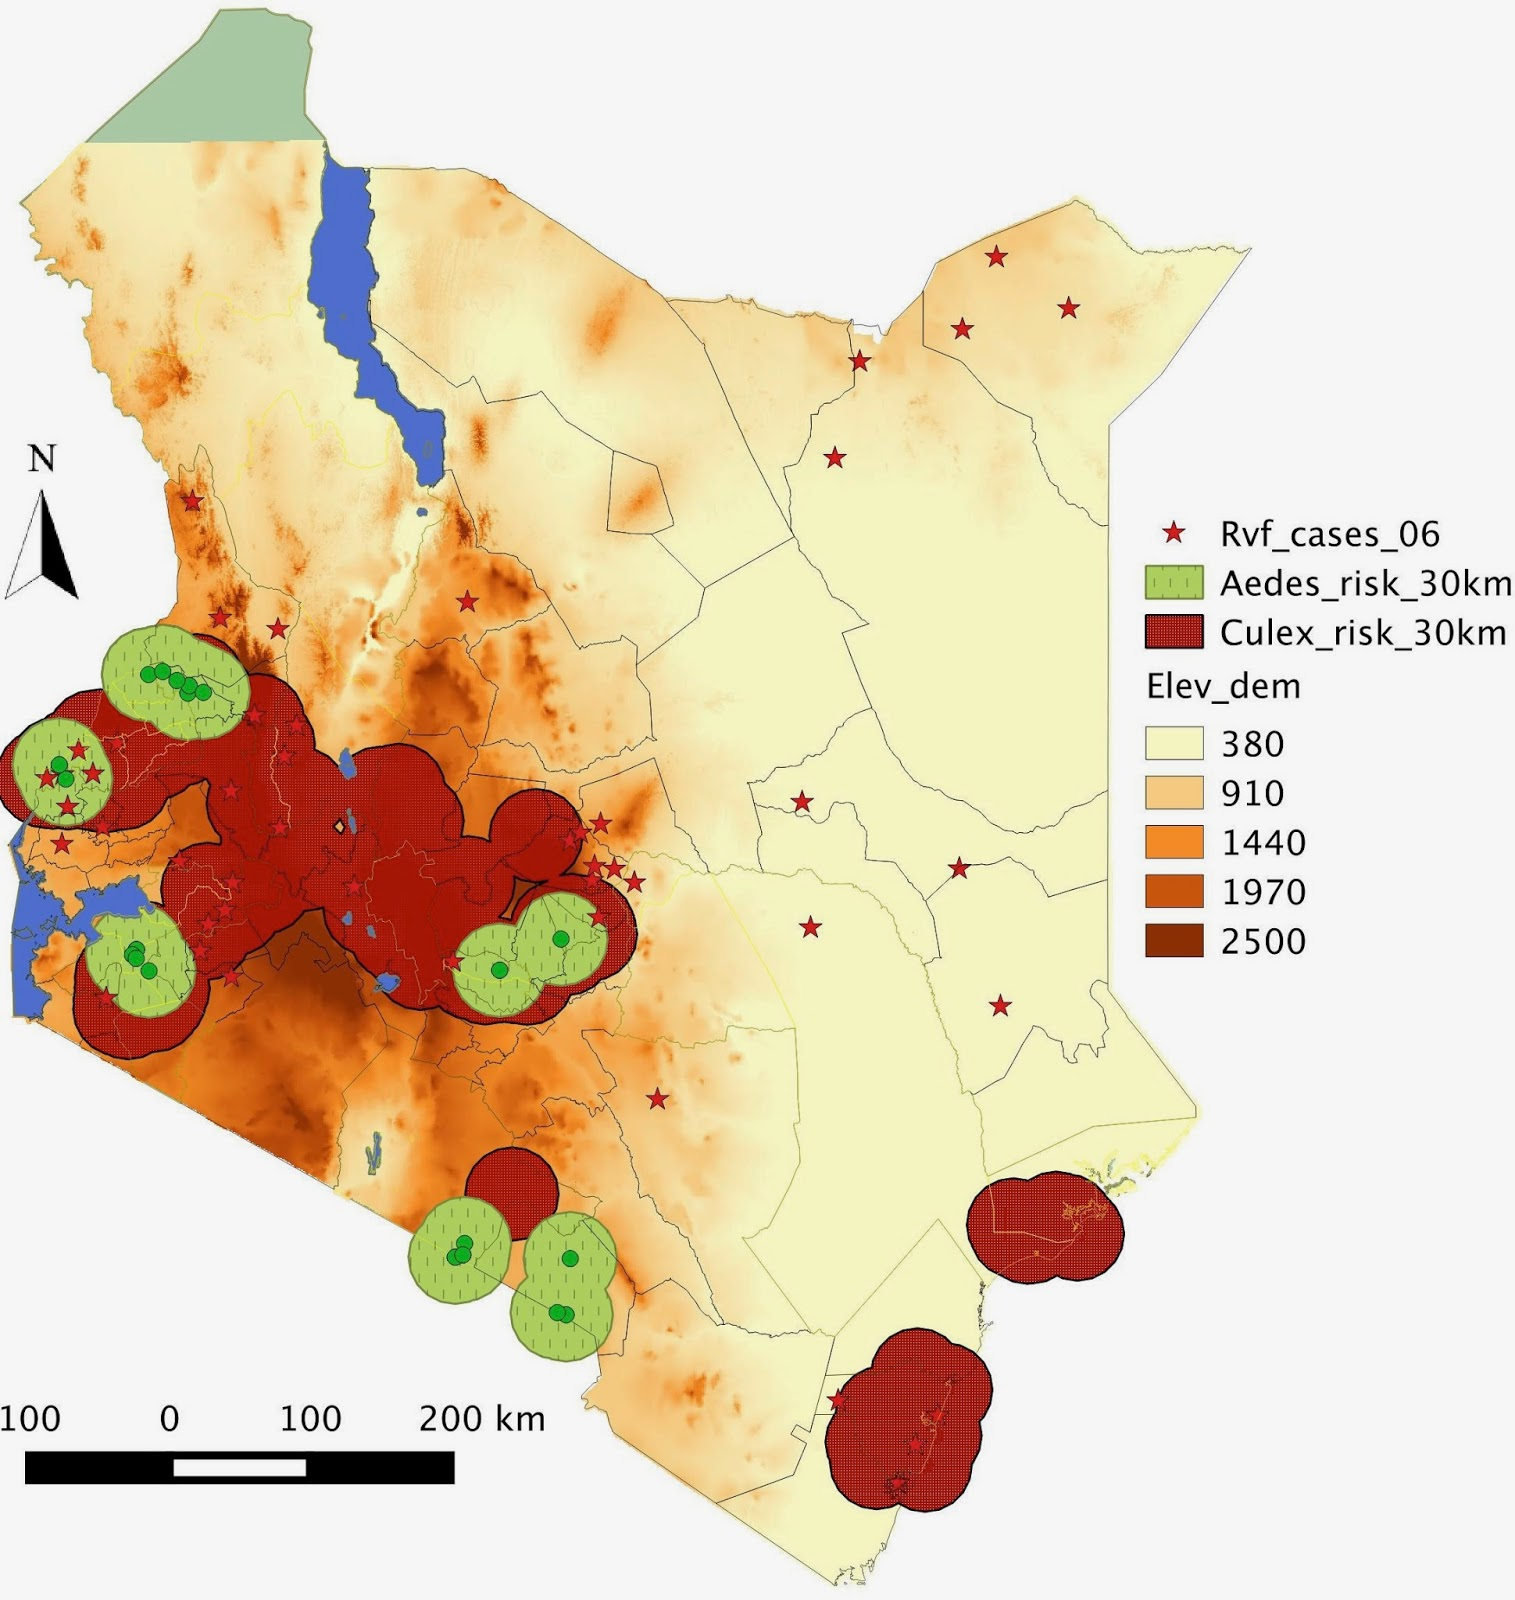 spatial risk assessment of rift valley fever potential outbreaks using a vector surveillance system in kenya